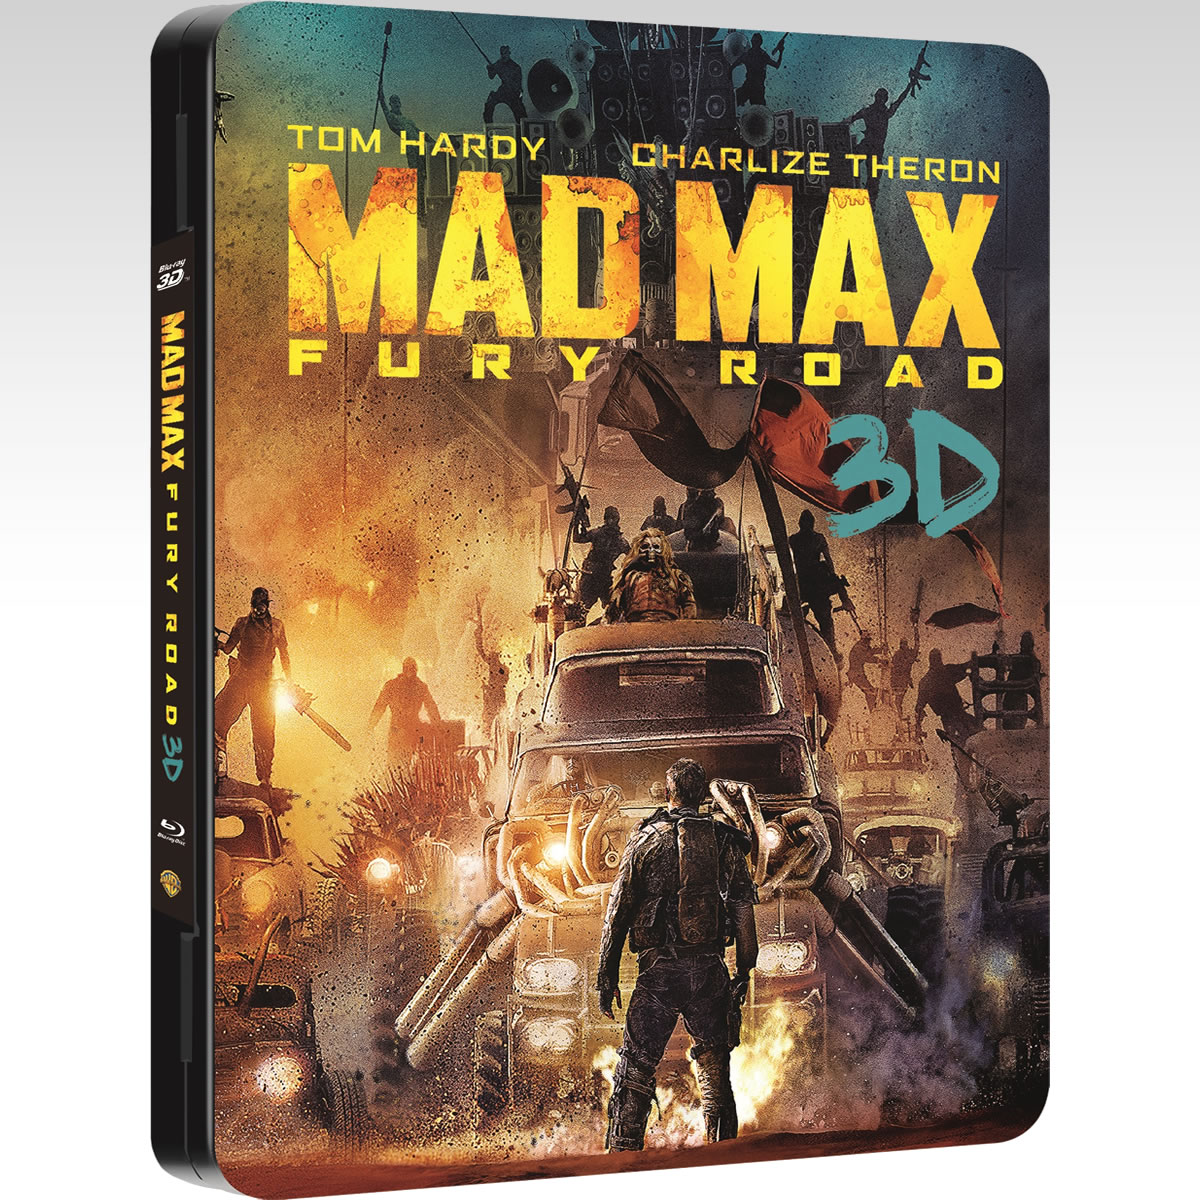 MAD MAX: FURY ROAD 3D - MAD MAX: � ������ ��� ����� 3D Limited Collector's Edition Futurepak (BLU-RAY 3D + BLU-RAY)